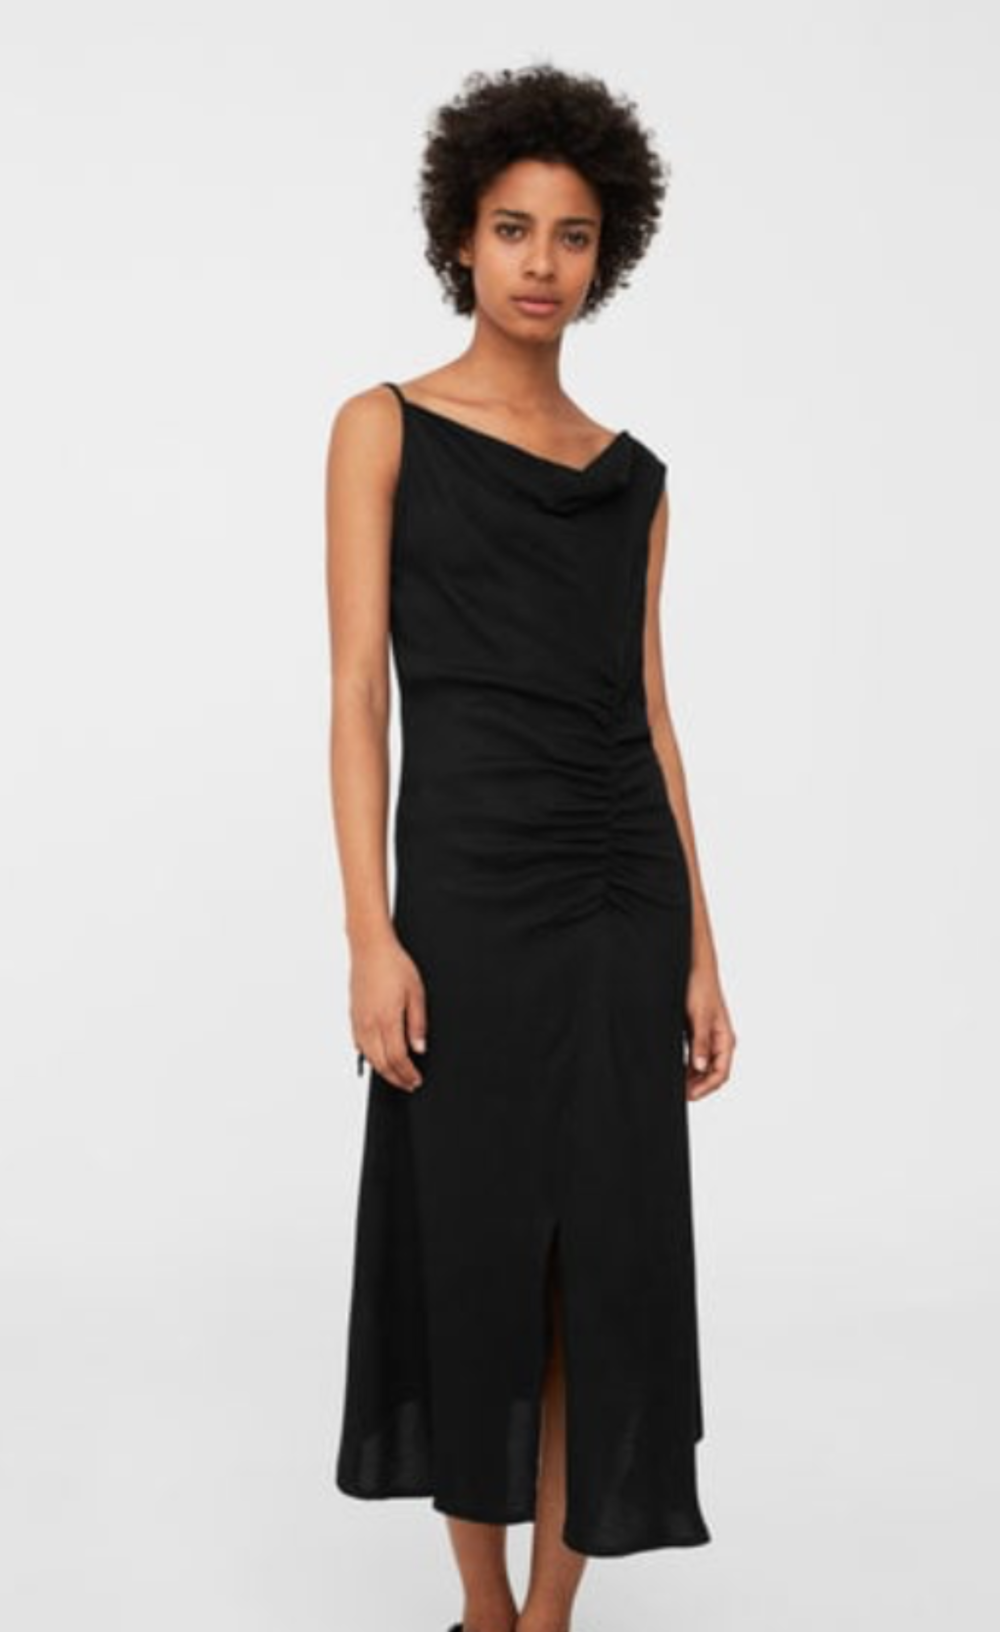 Love this dress, absolutely classical. Wear on almost any occasion, even with trainers or Converse.